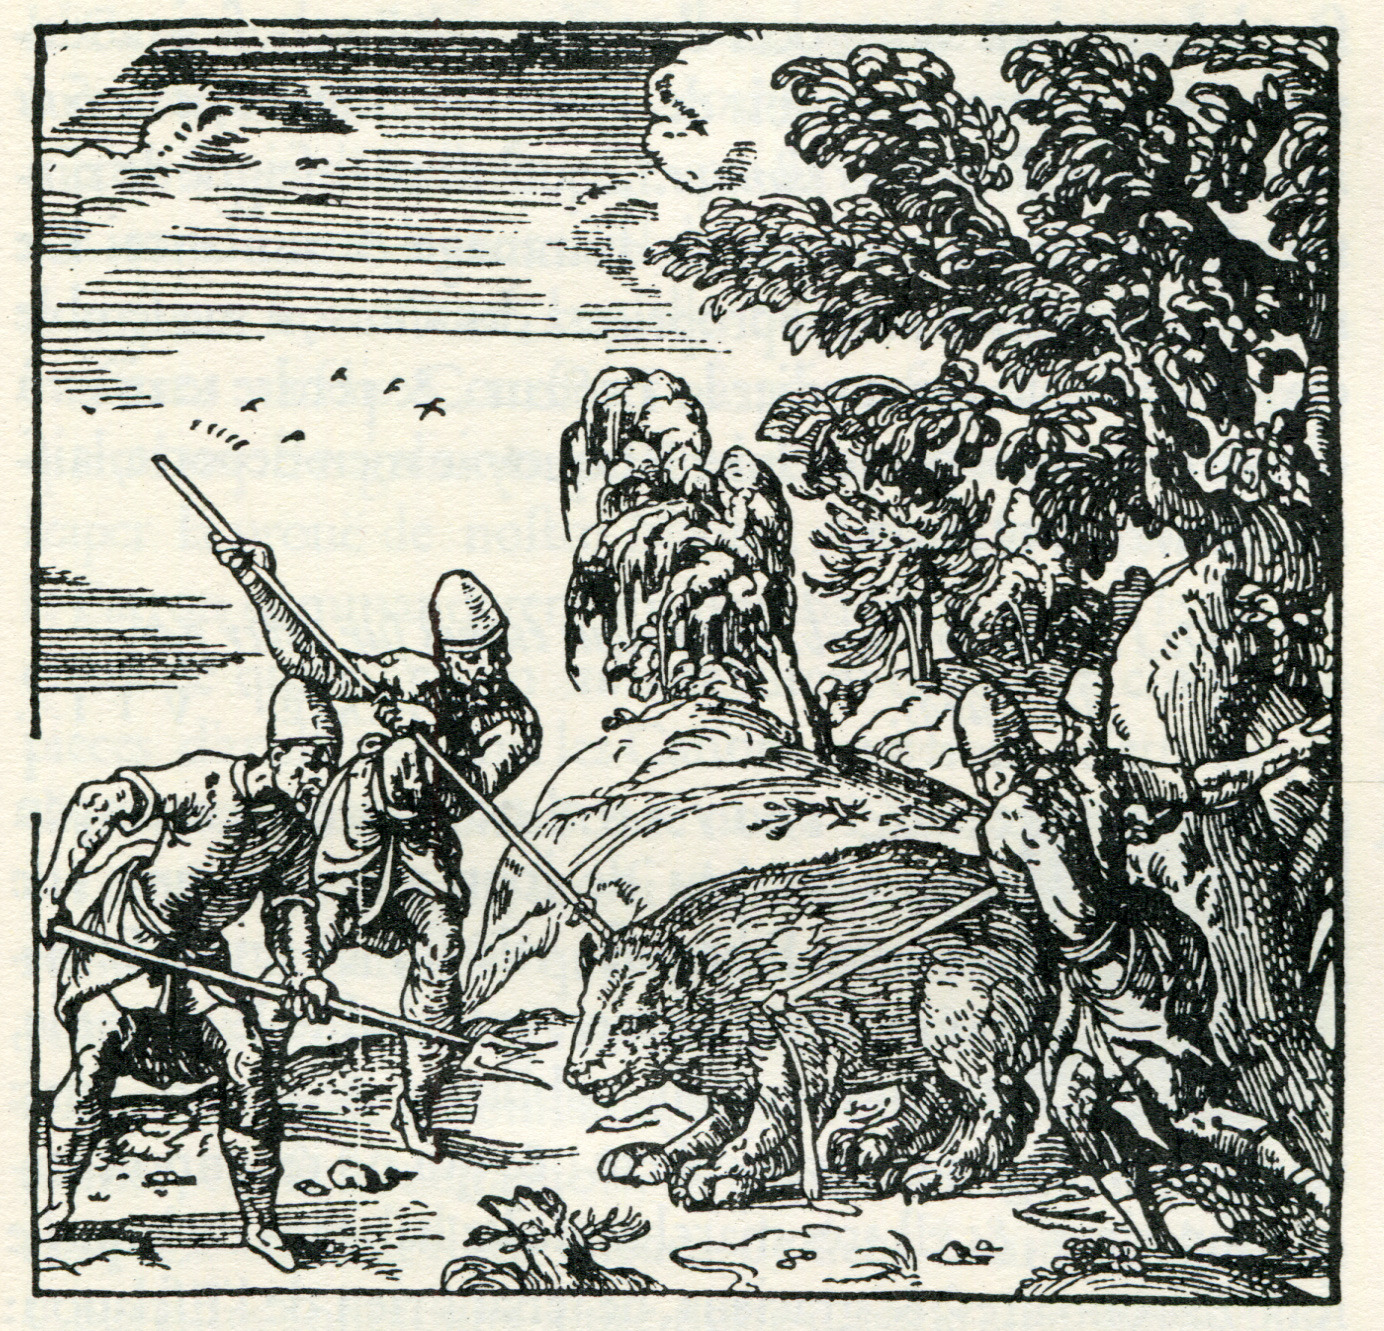 File:Ancient Athenians slaughter a bear - Thevet André - 1556.jpg